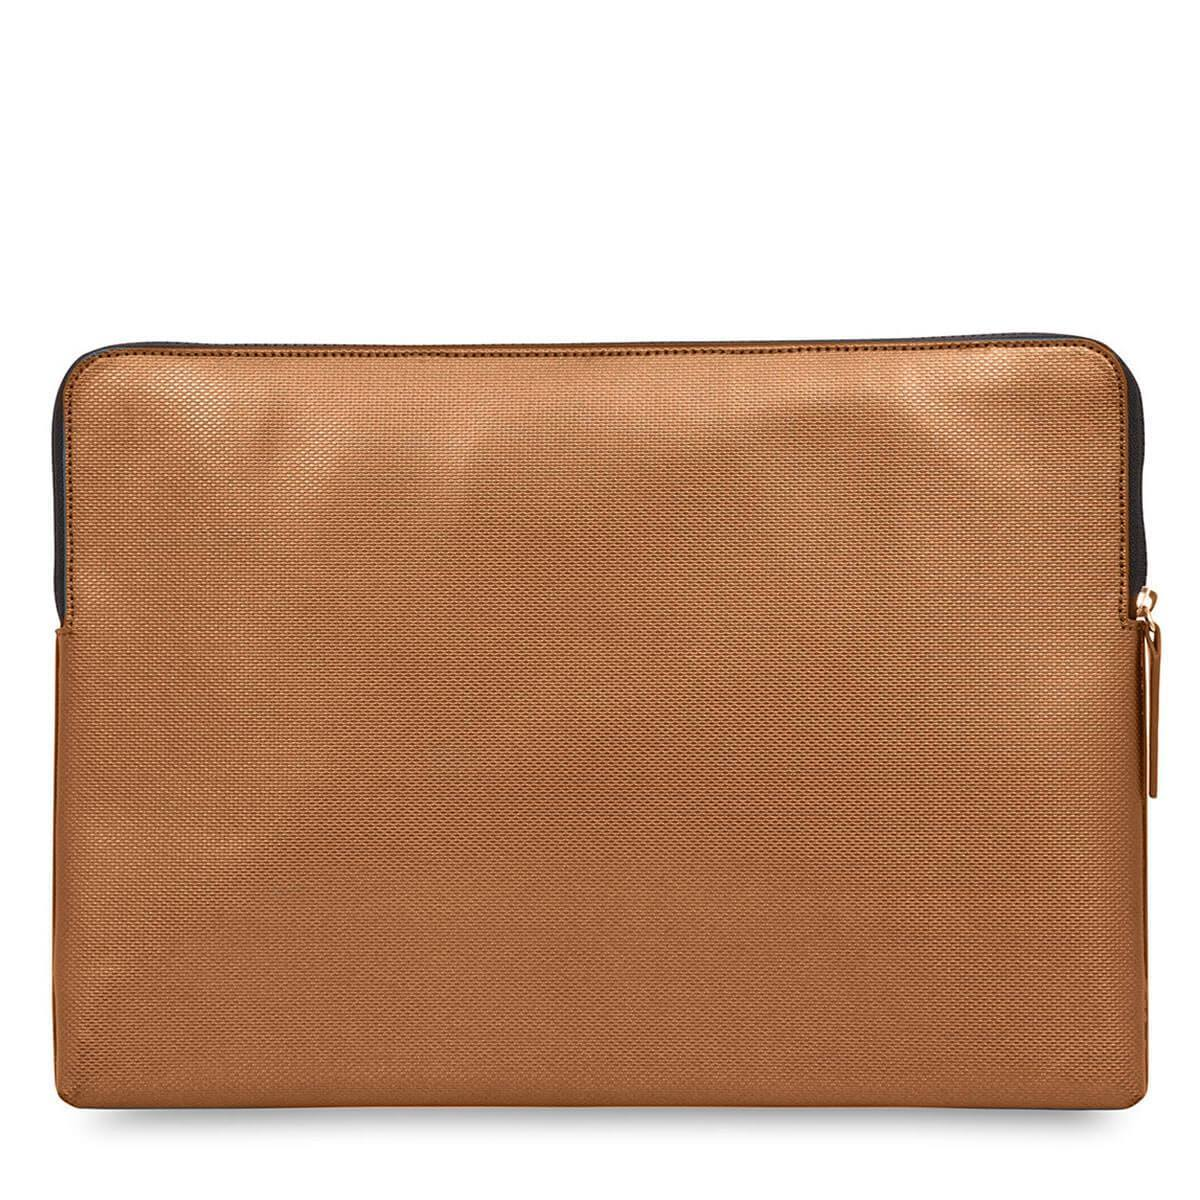 "KNOMO Embossed 15"" Laptop Sleeve - Bronze"